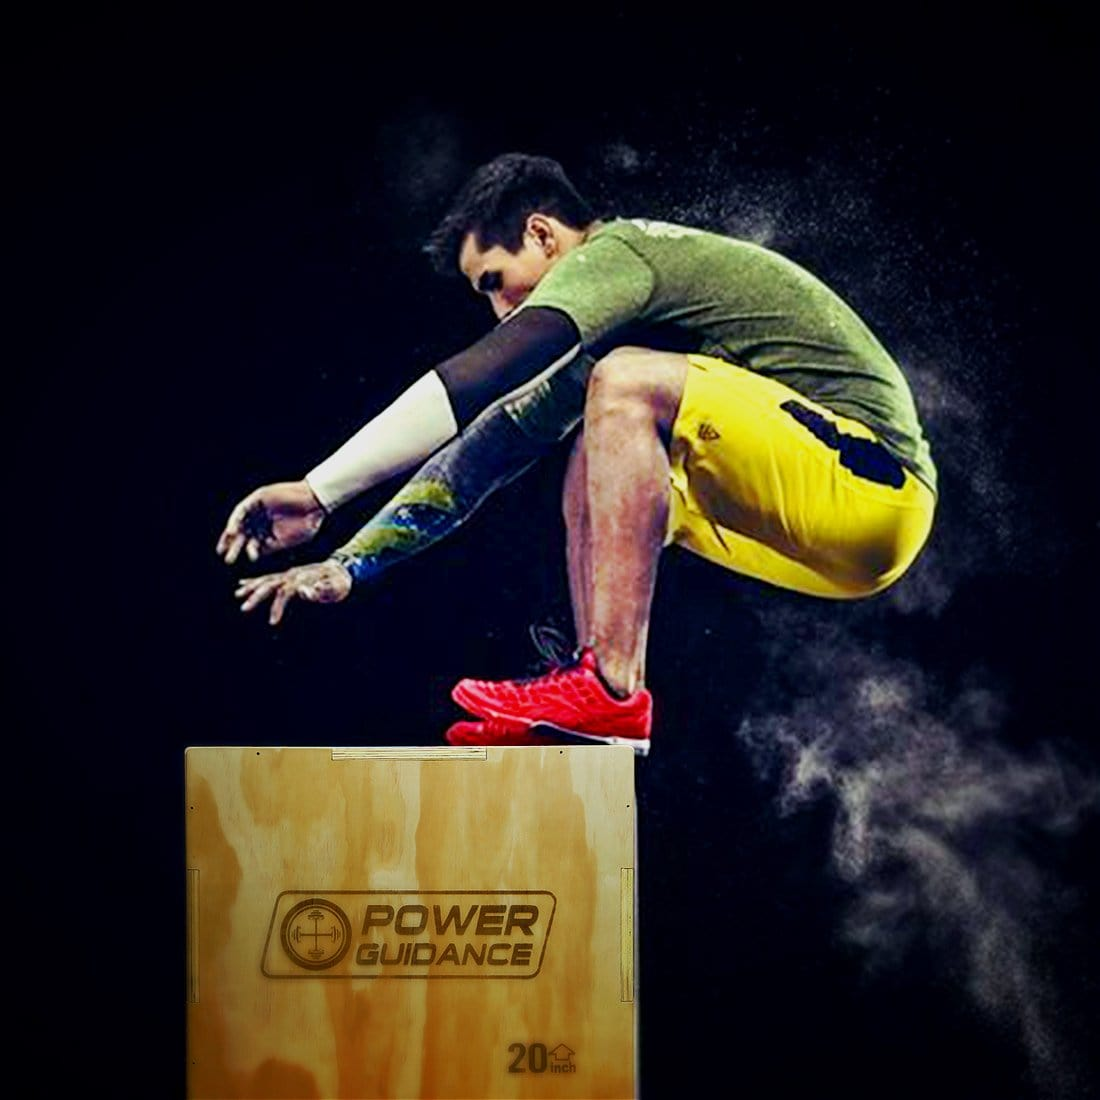 Power Guidance 3-in-1 Wood Plyometric Jump Boxes